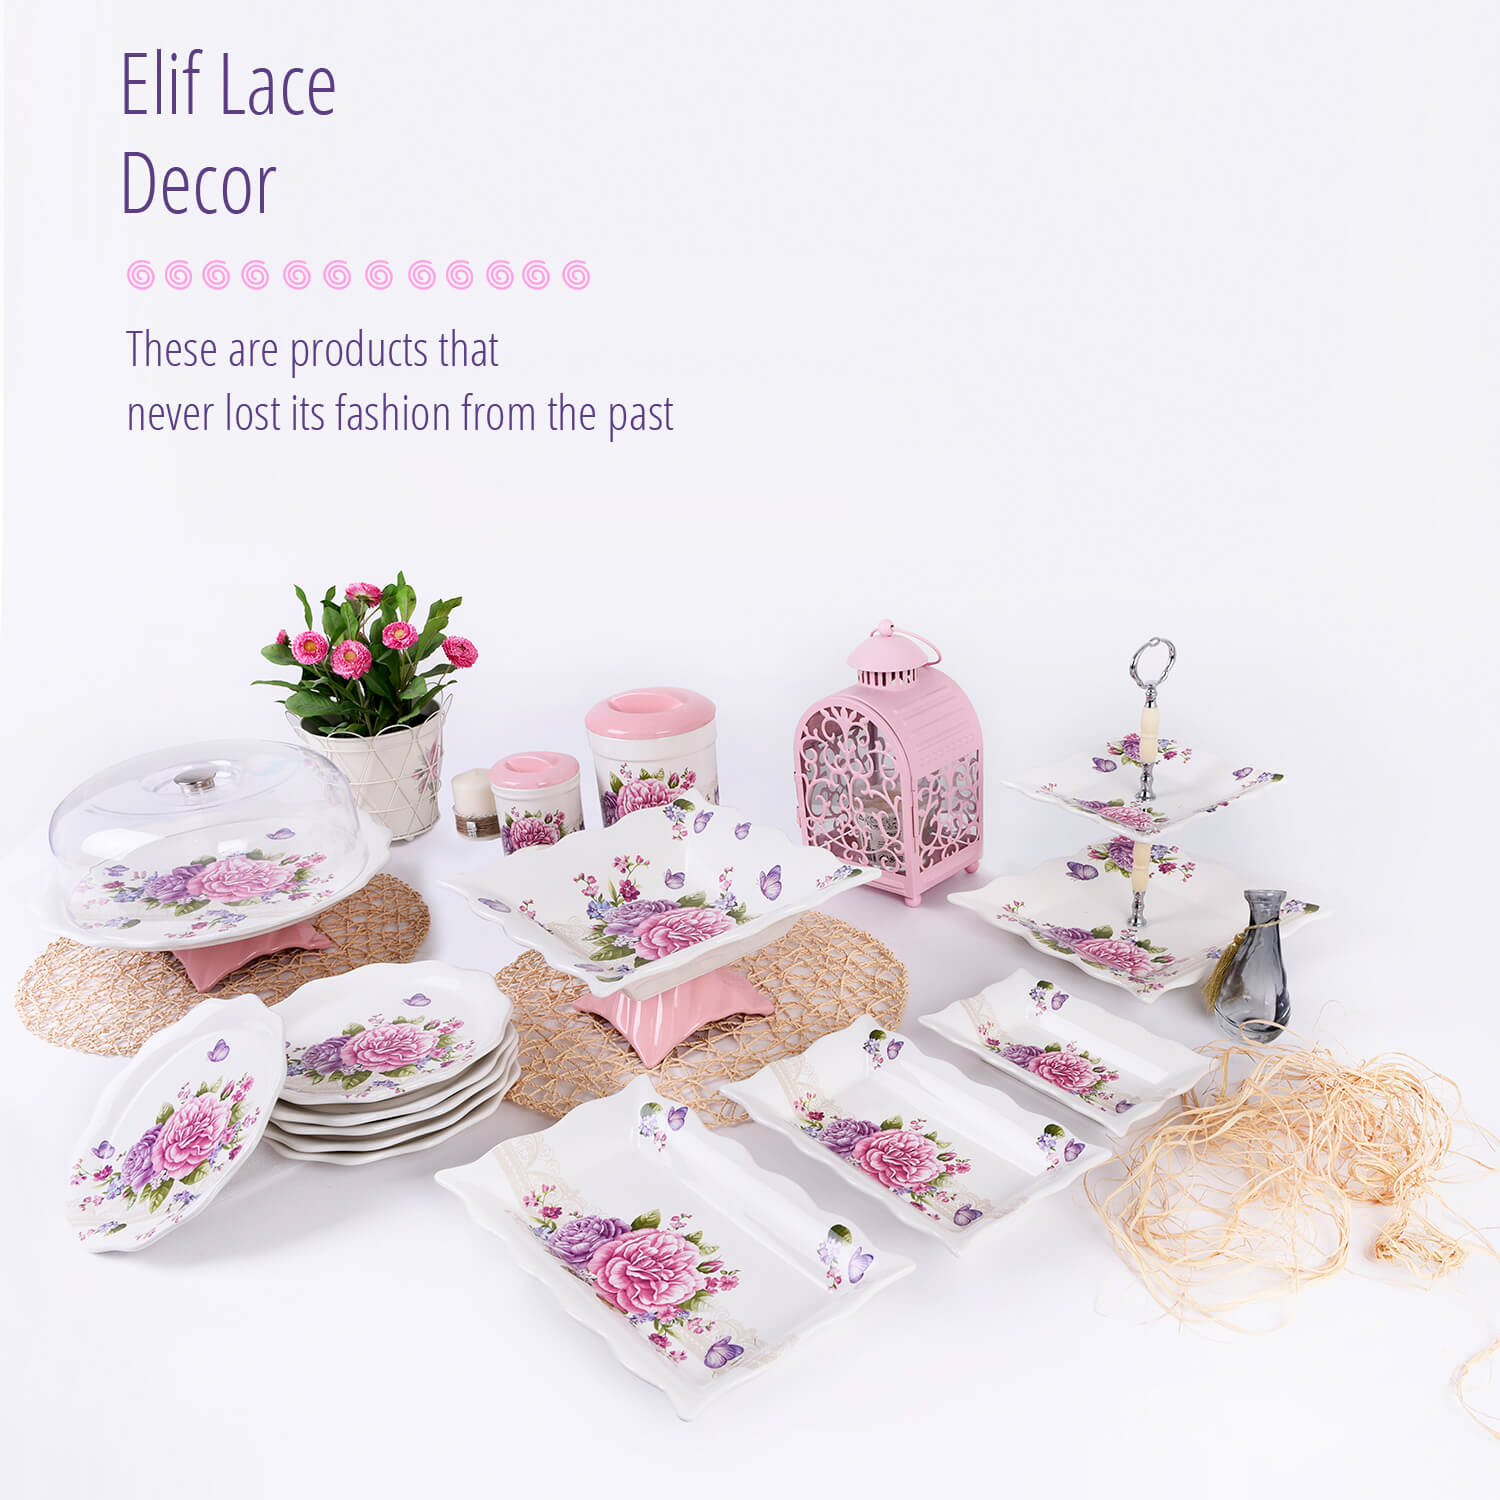 flyer2-en-Elif-Lace-Decor